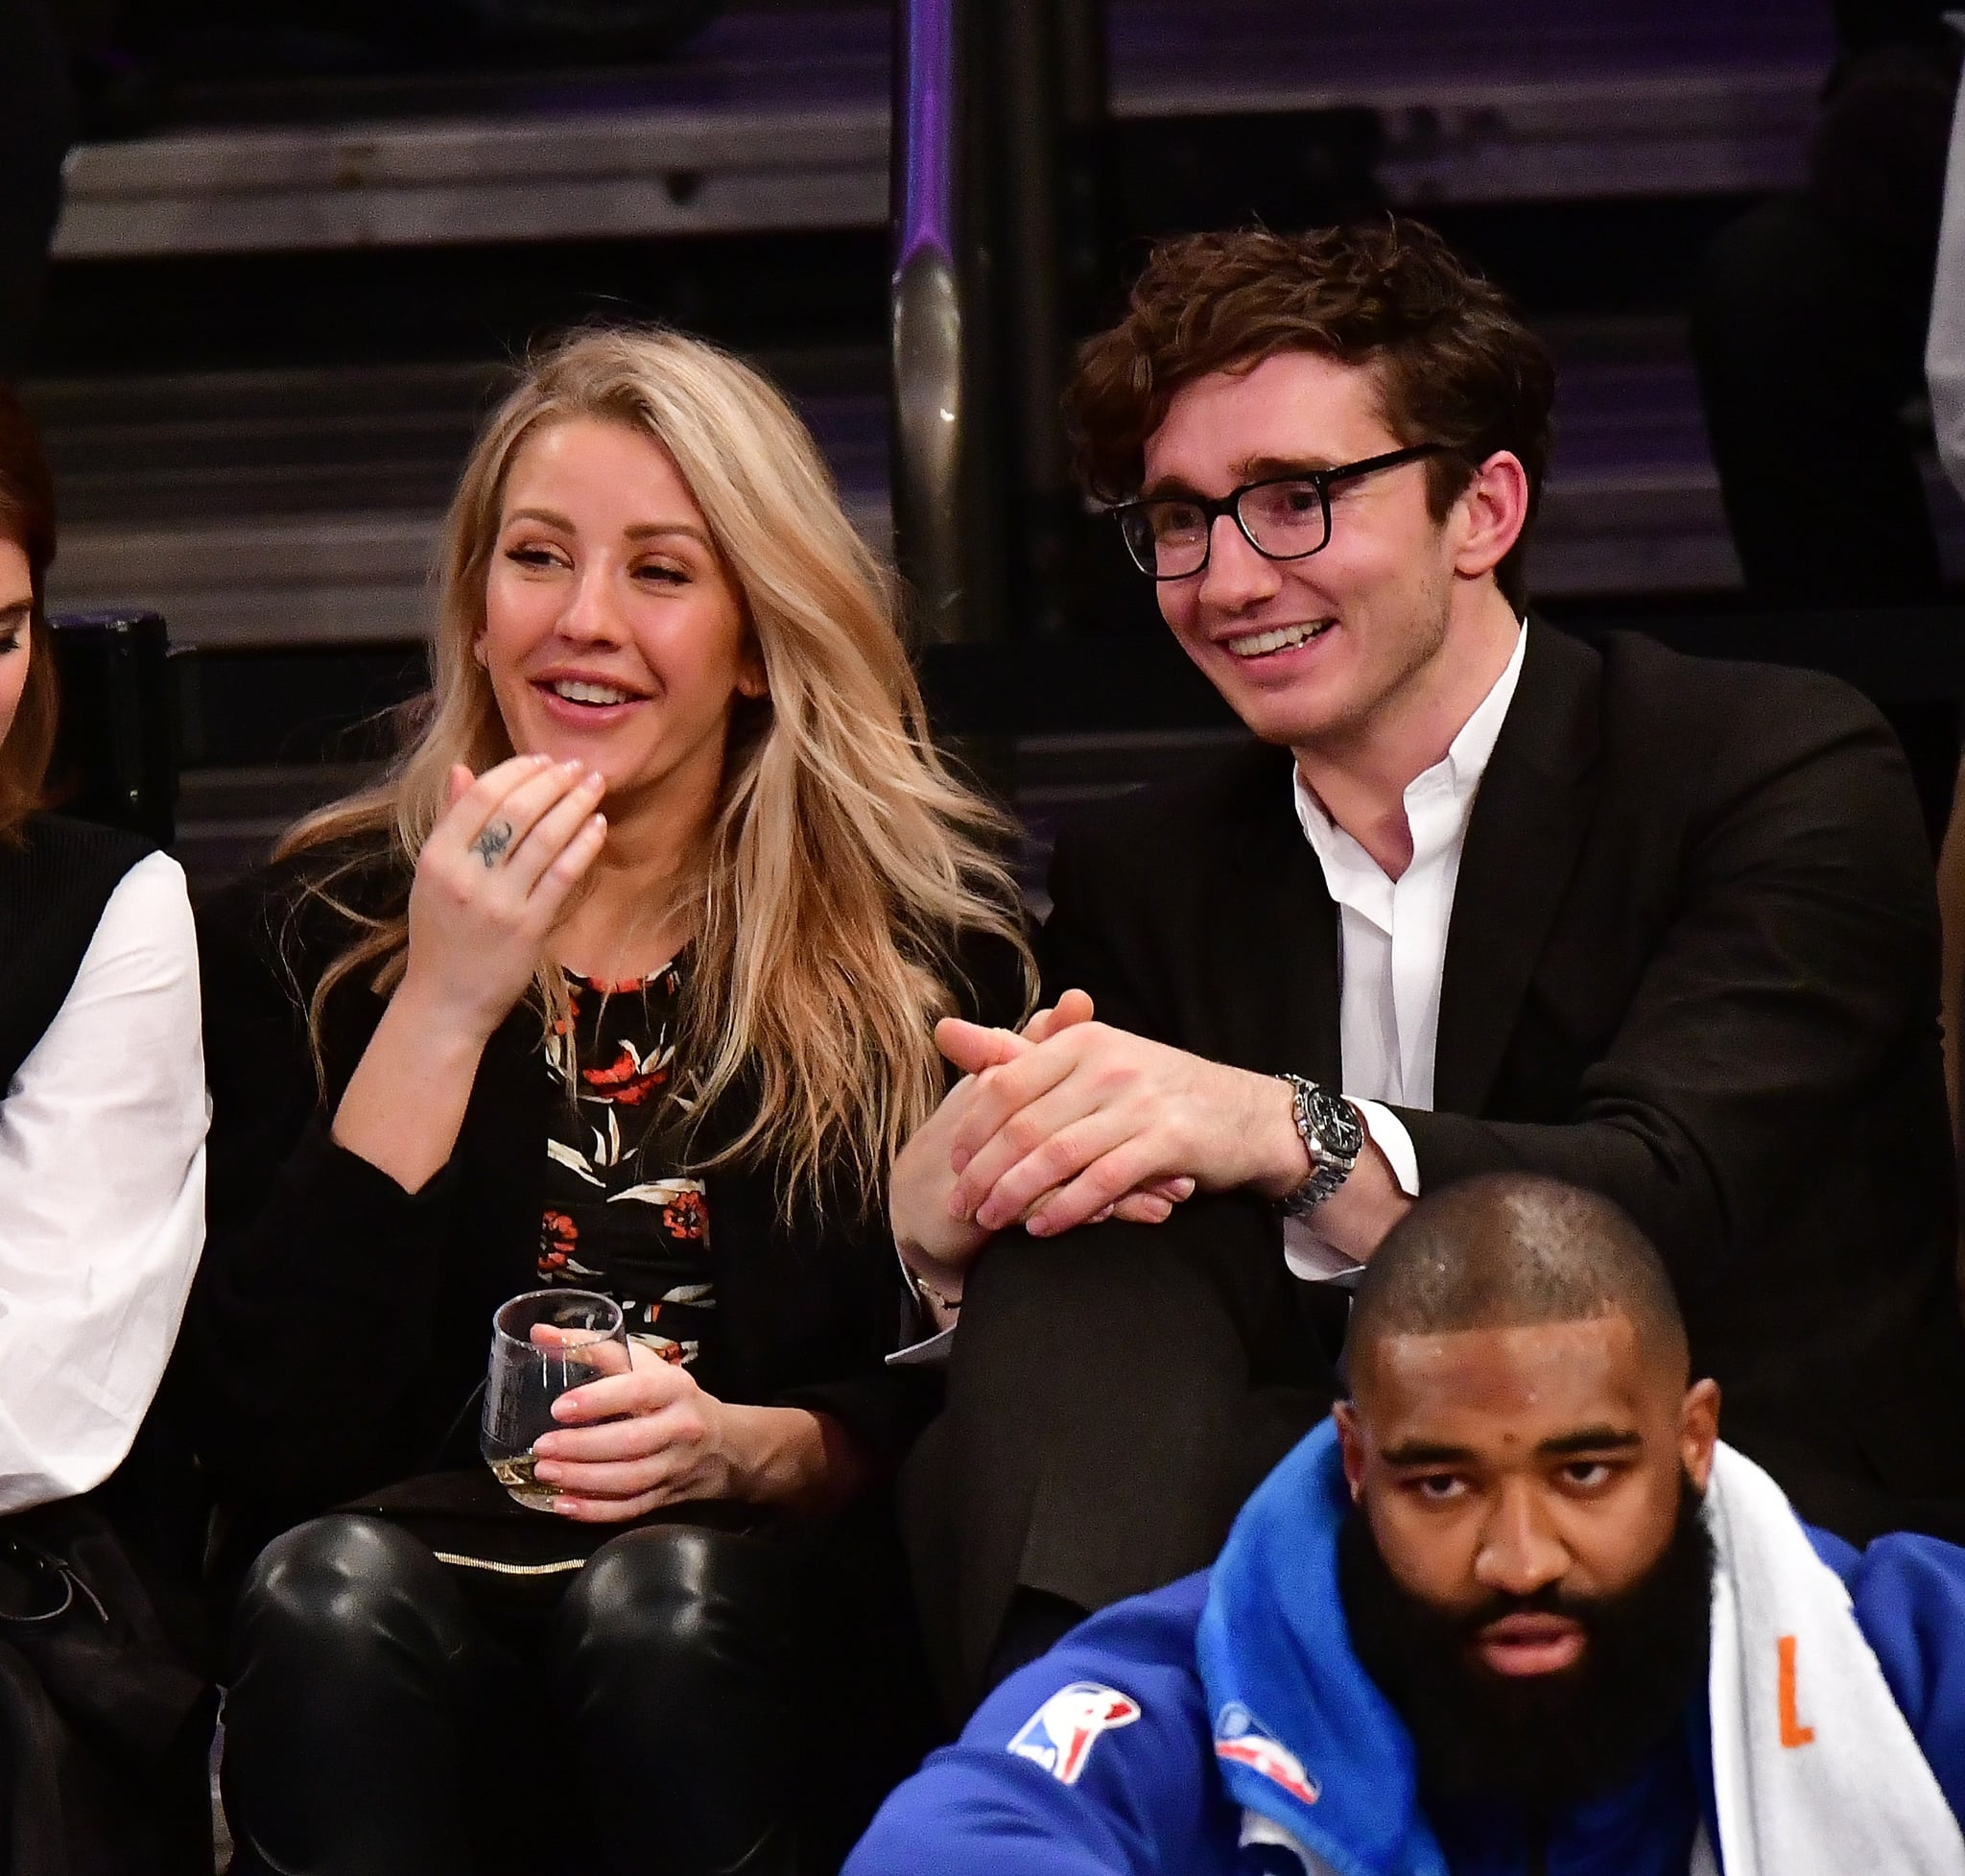 NEW YORK, NY - OCTOBER 27:  Ellie Goulding and Caspar Jopling attend the Brooklyn Nets Vs New York Knicks game at Madison Square Garden on October 27, 2017 in New York City.  (Photo by James Devaney/WireImage)